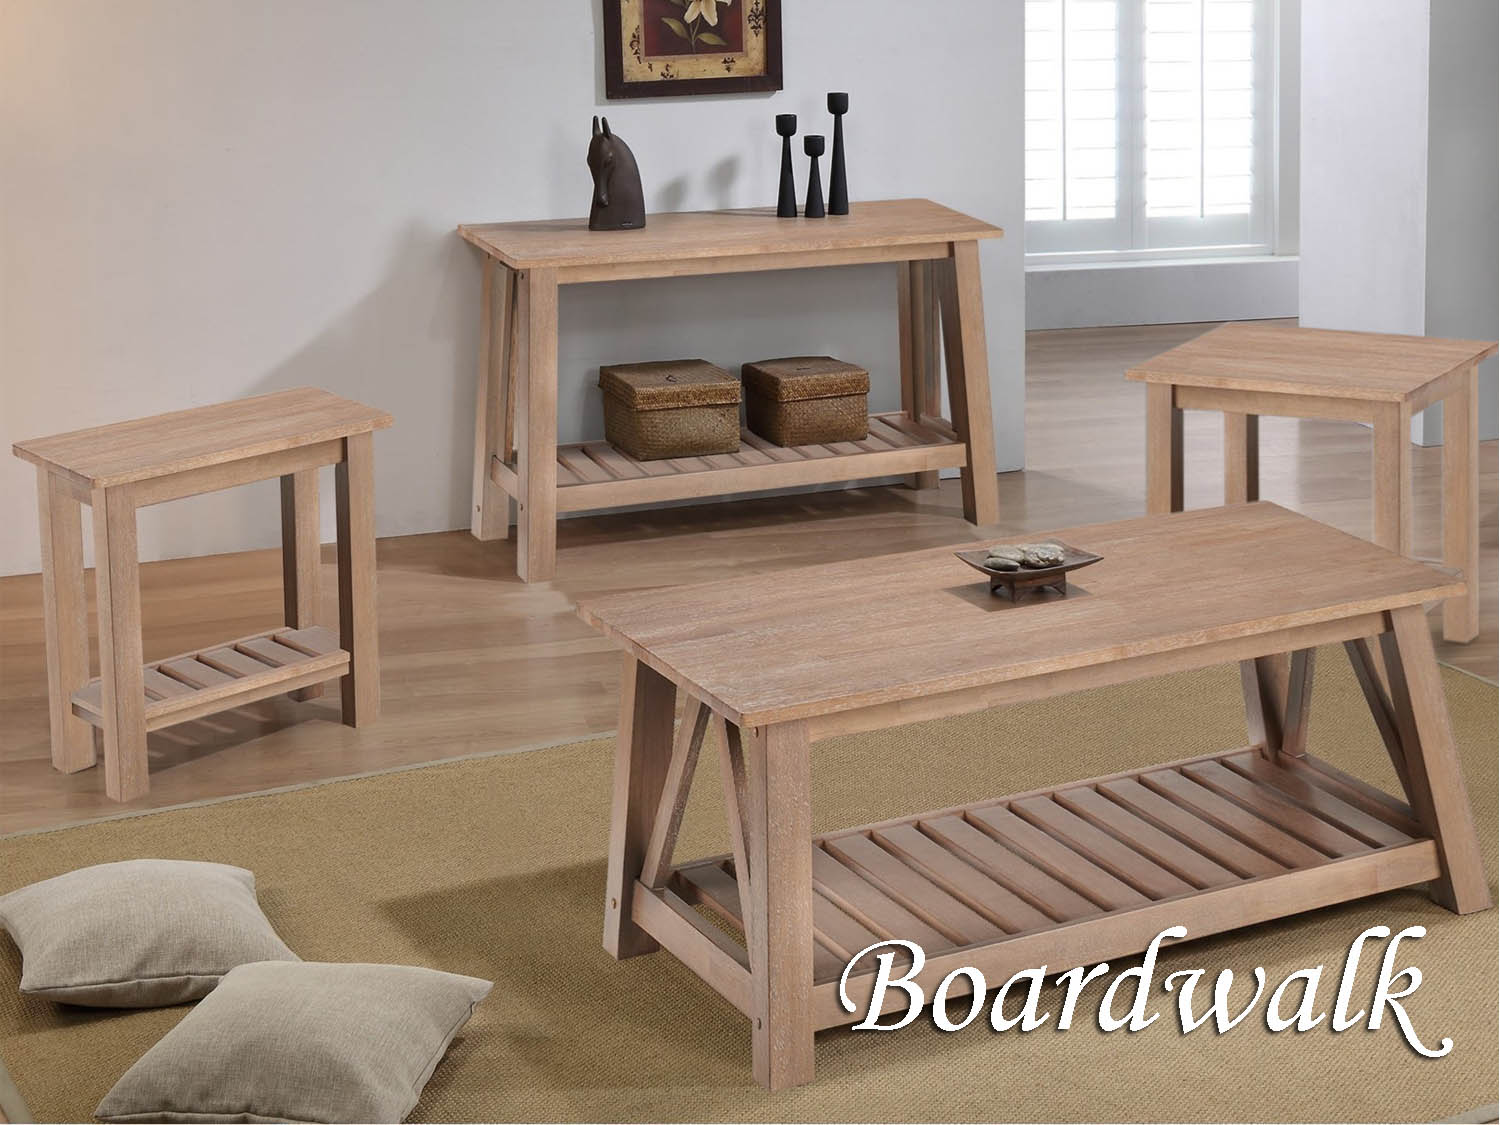 Barbo's Furniture, Boardwalk, Living room, Family Room, Den, Occasional, Cape Cod, Coastal, Seaside, Casual, Natural, Cocktail, Coffee, End, Chairside, Sofa, Table